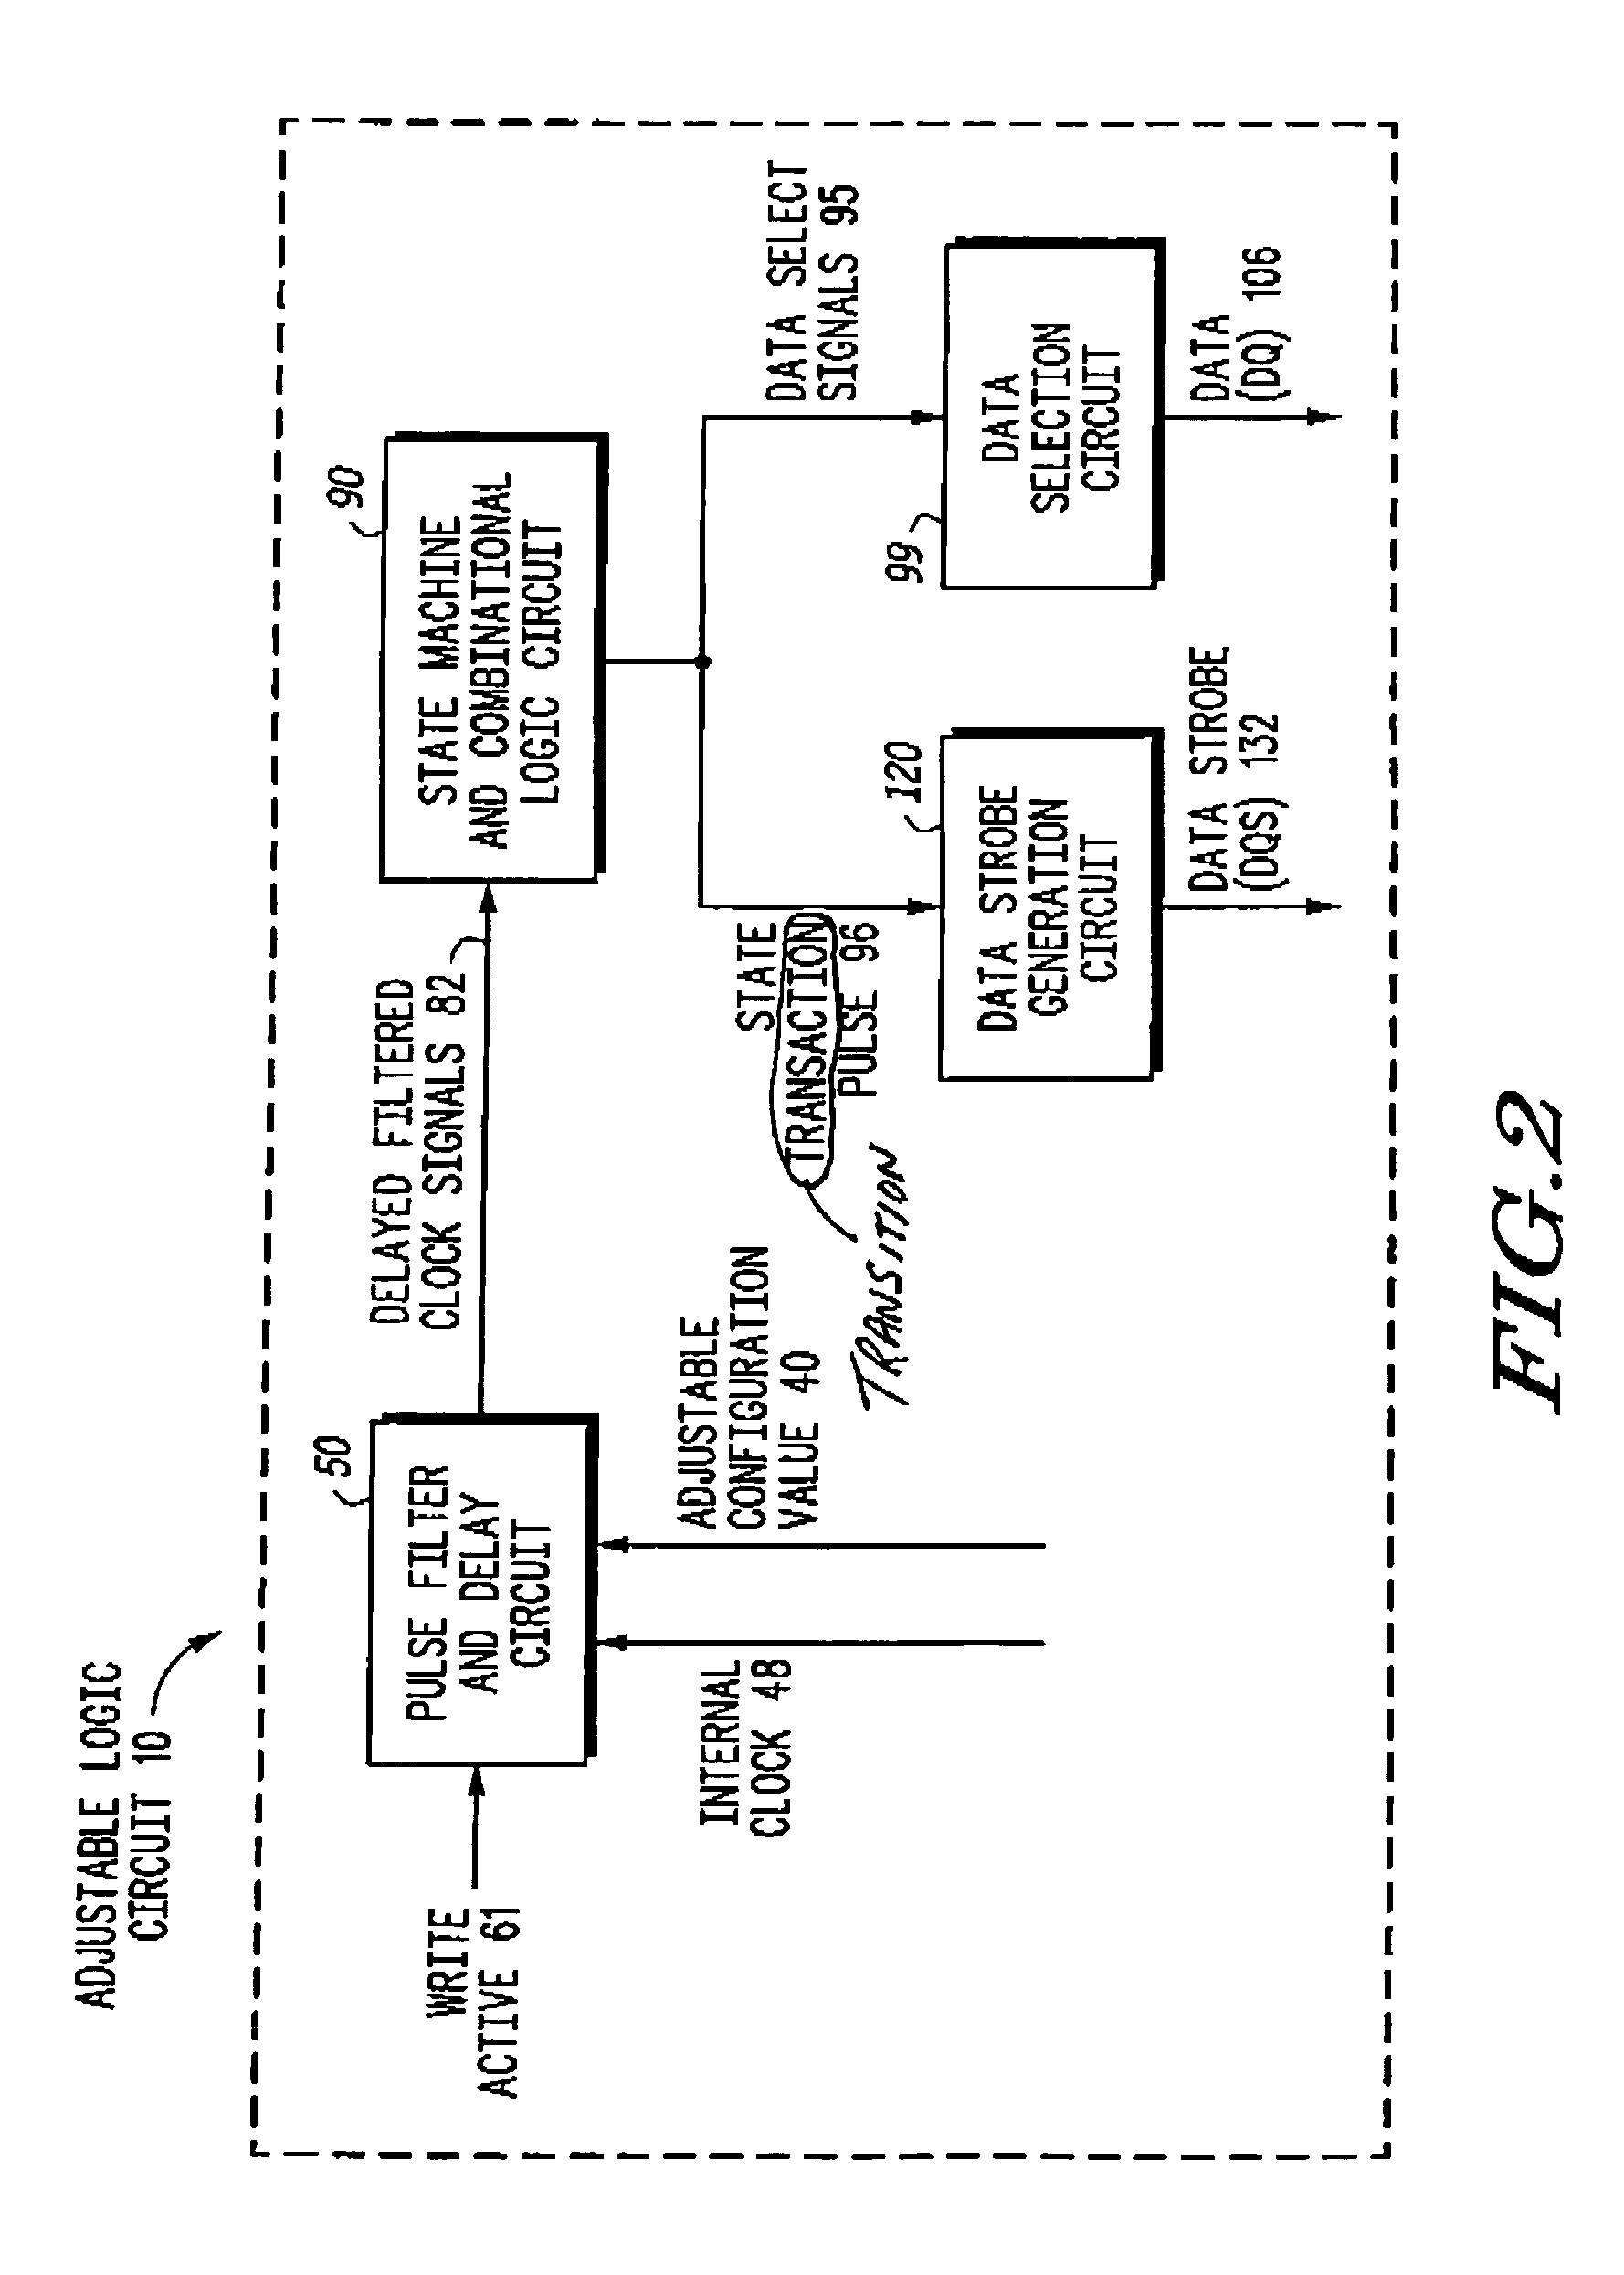 Patent Us7181638 Method And Apparatus For Skewing Data With Schematic Of Basic Strobe Circuit Drawing